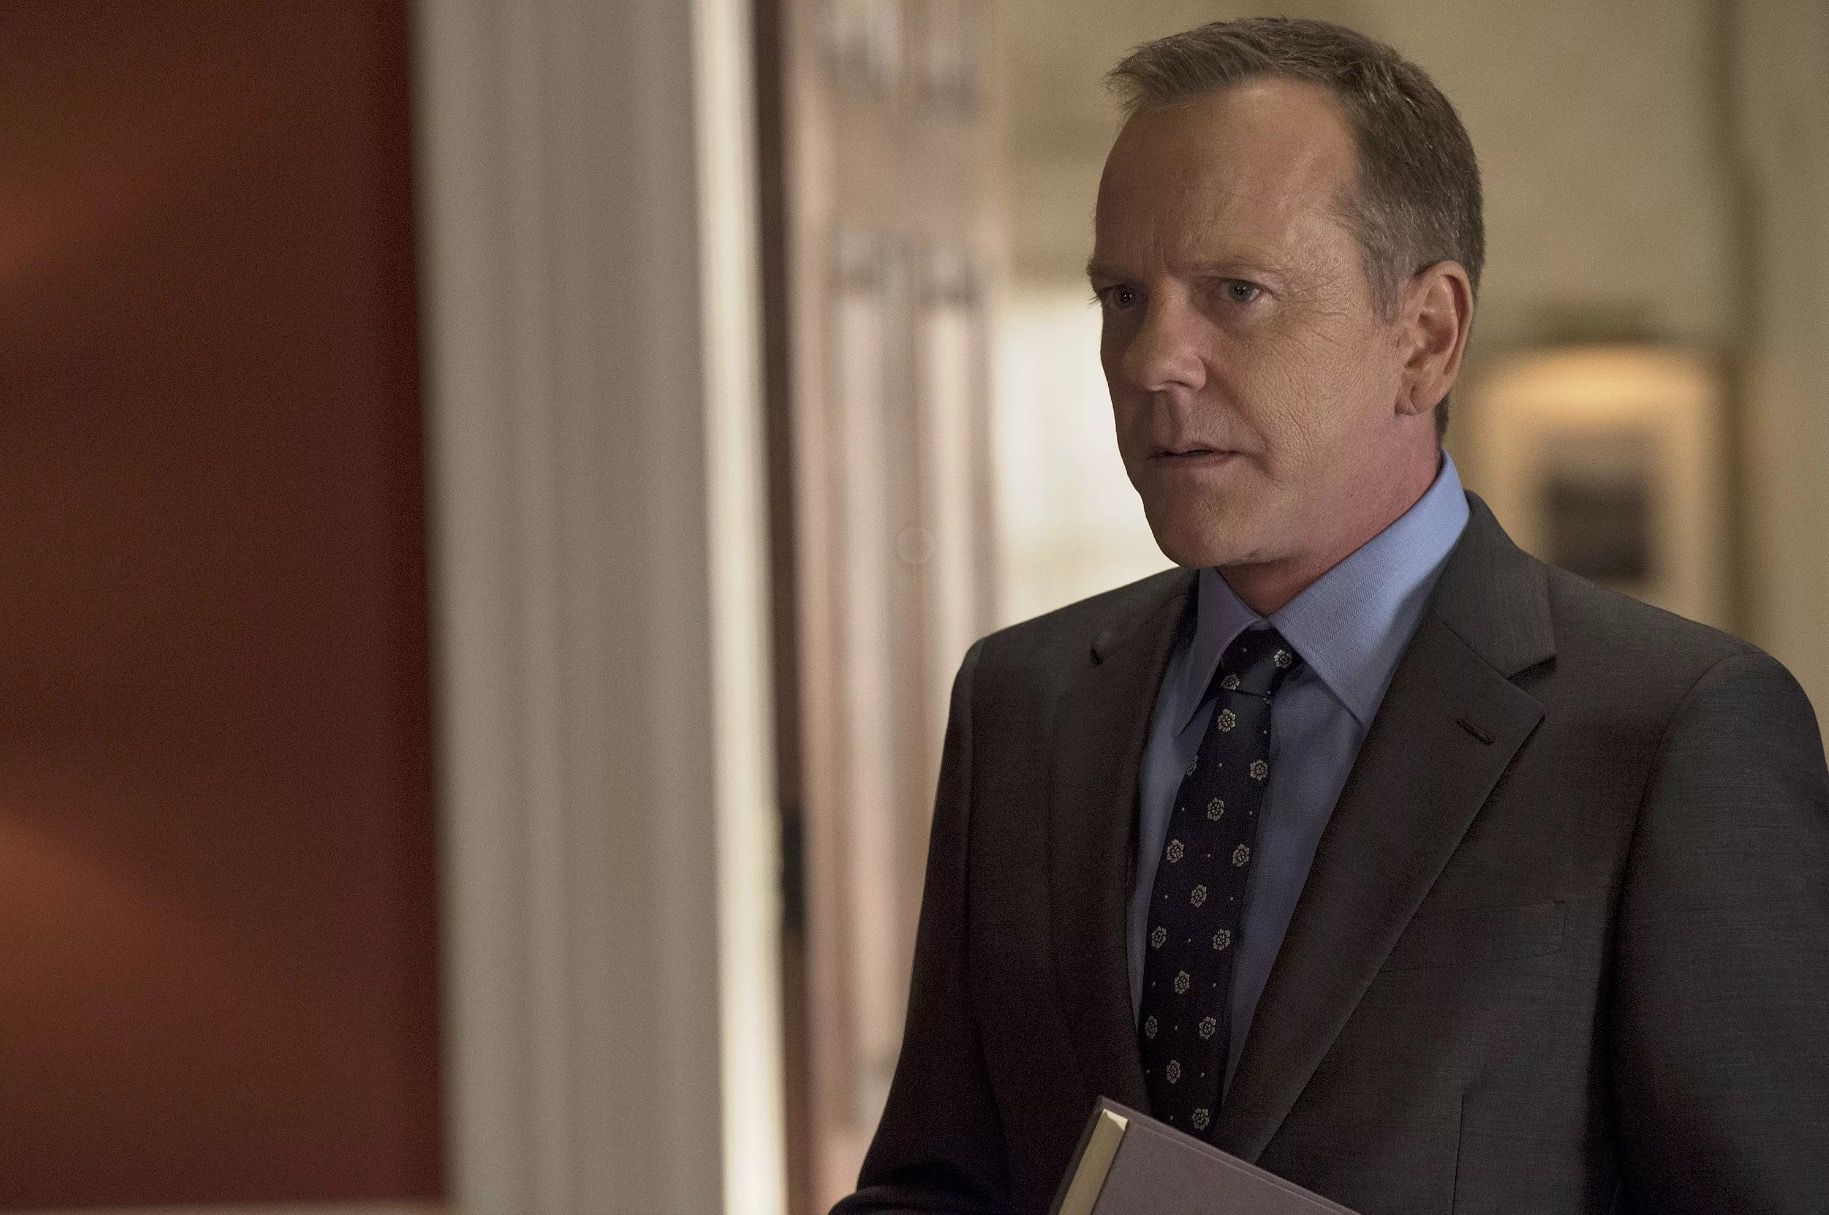 Kiefer Sutherland's next TV show confirmed after Designated Survivor's Netflix axe